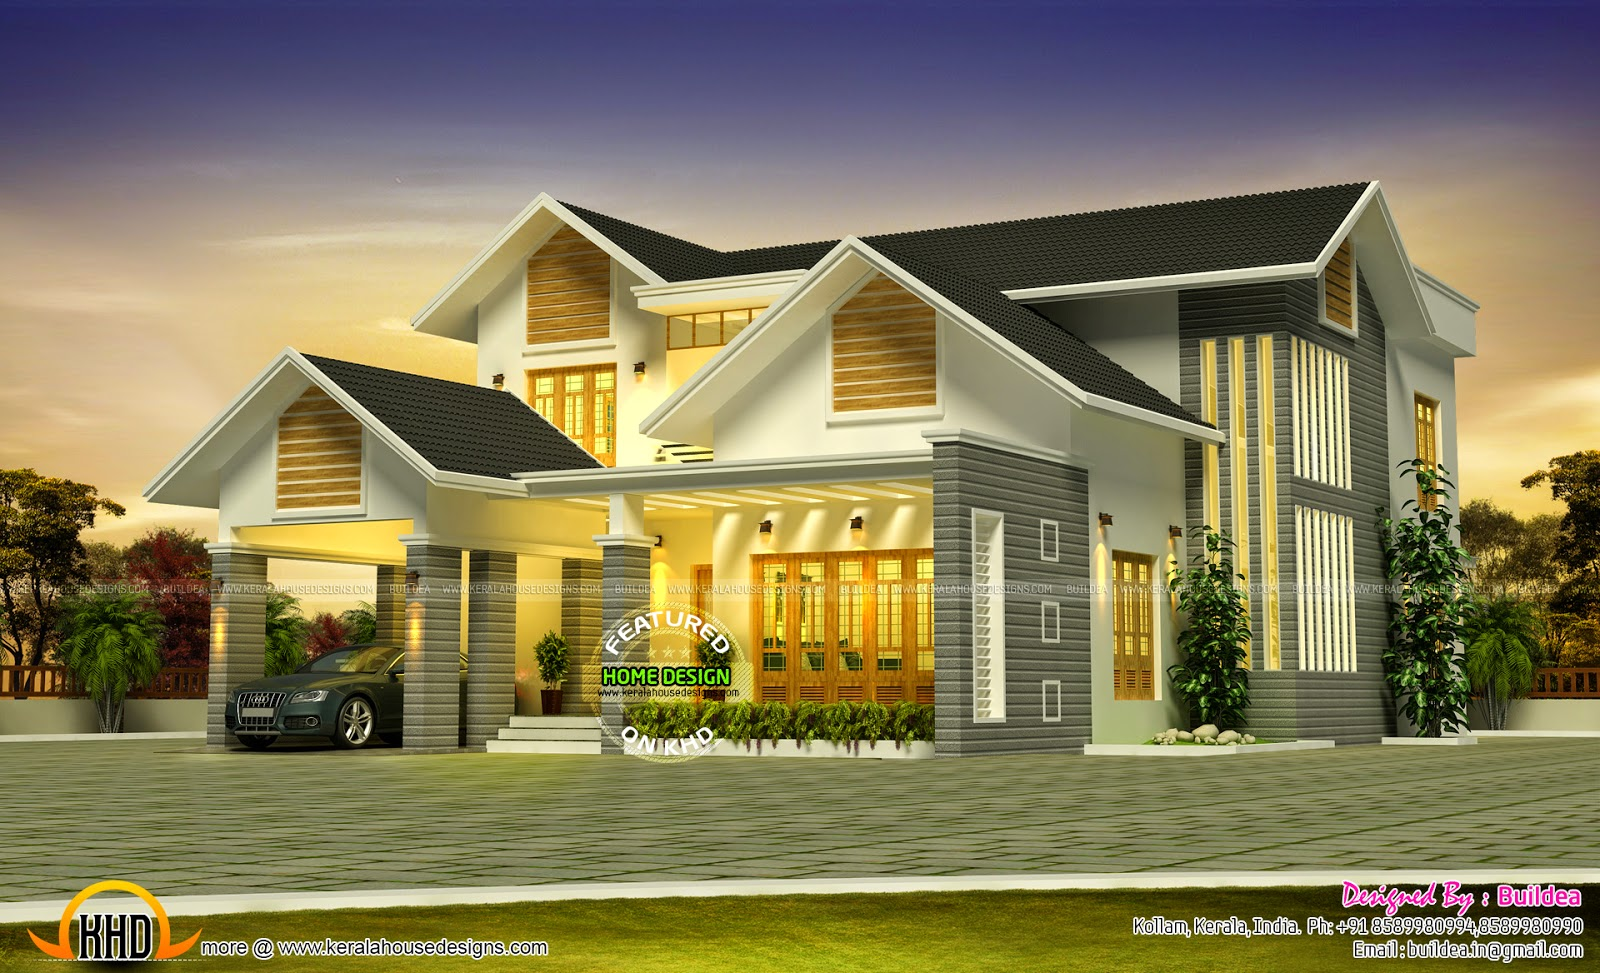 grand house design kerala home design and floor plans